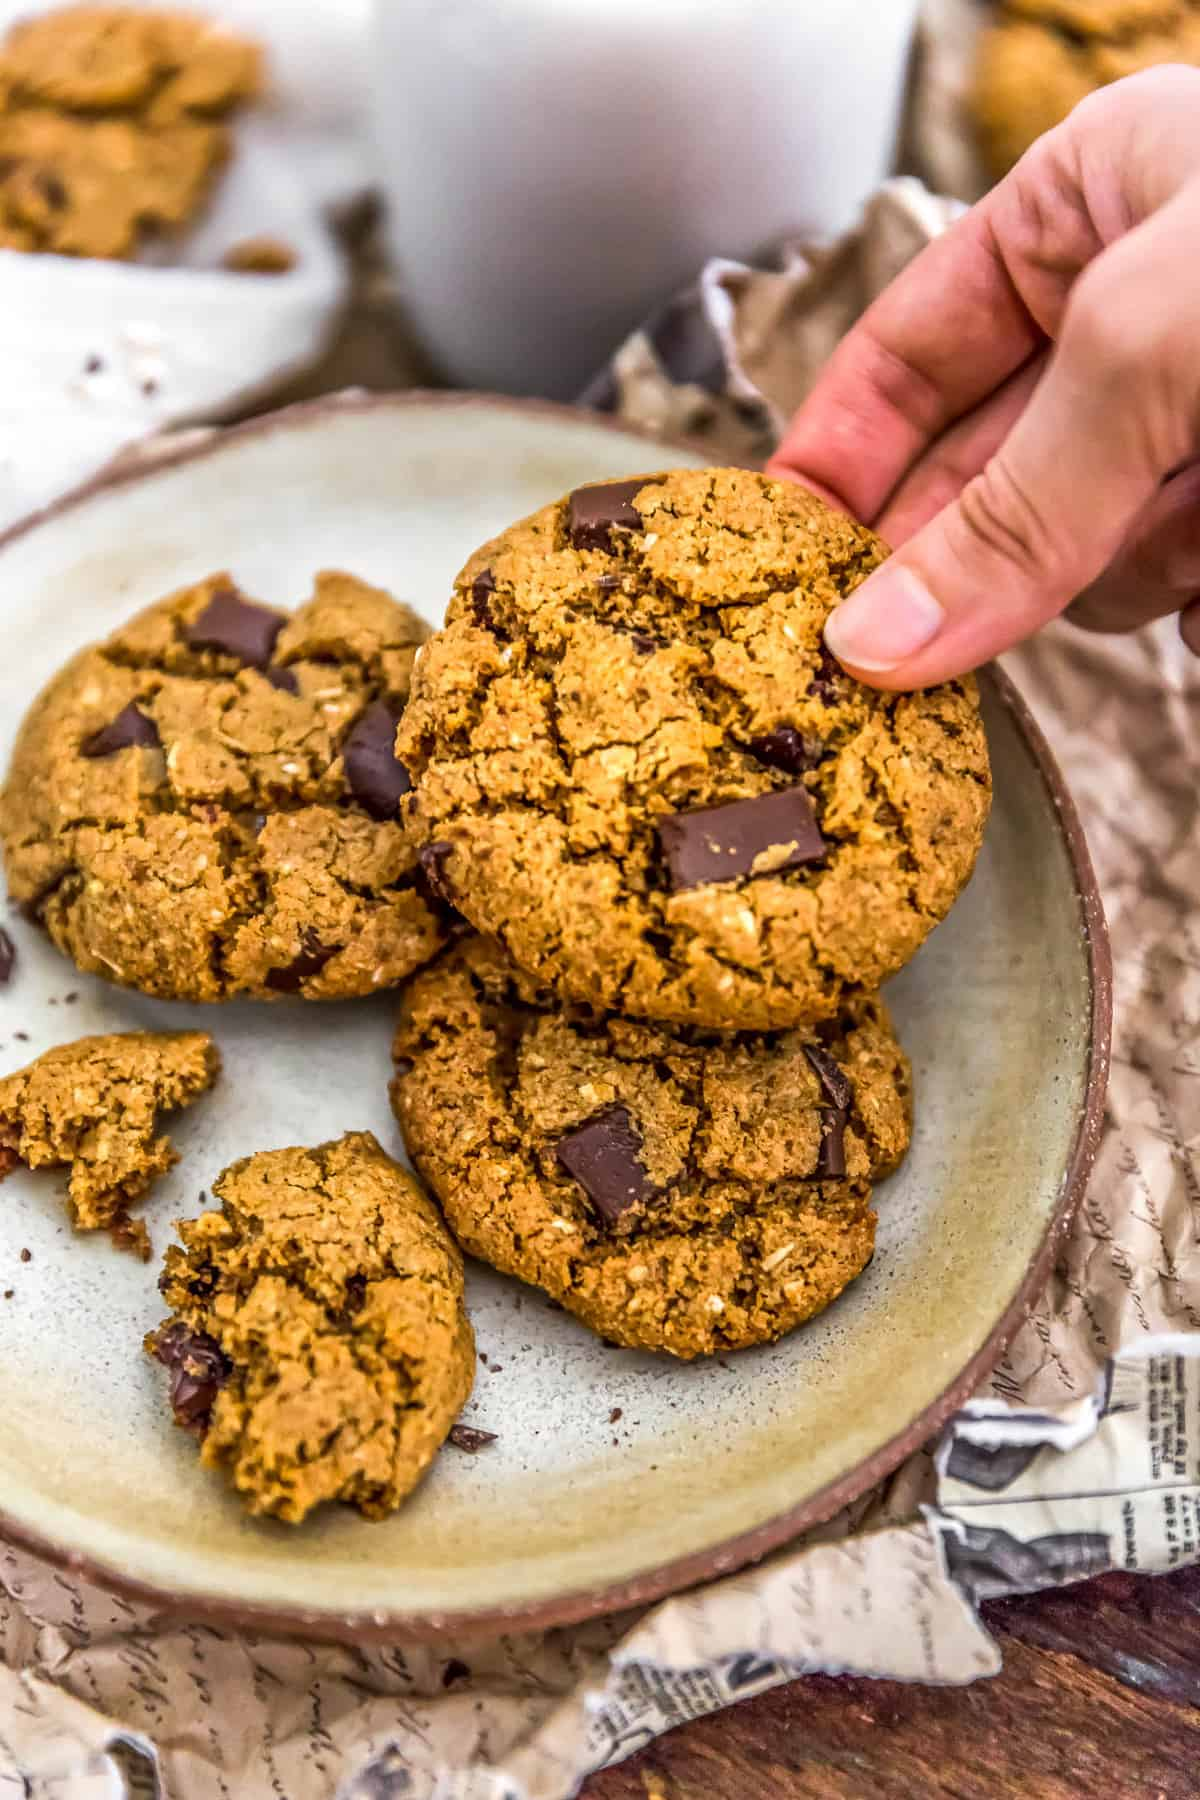 Picking up a Healthy Vegan Chocolate Chip Cookie